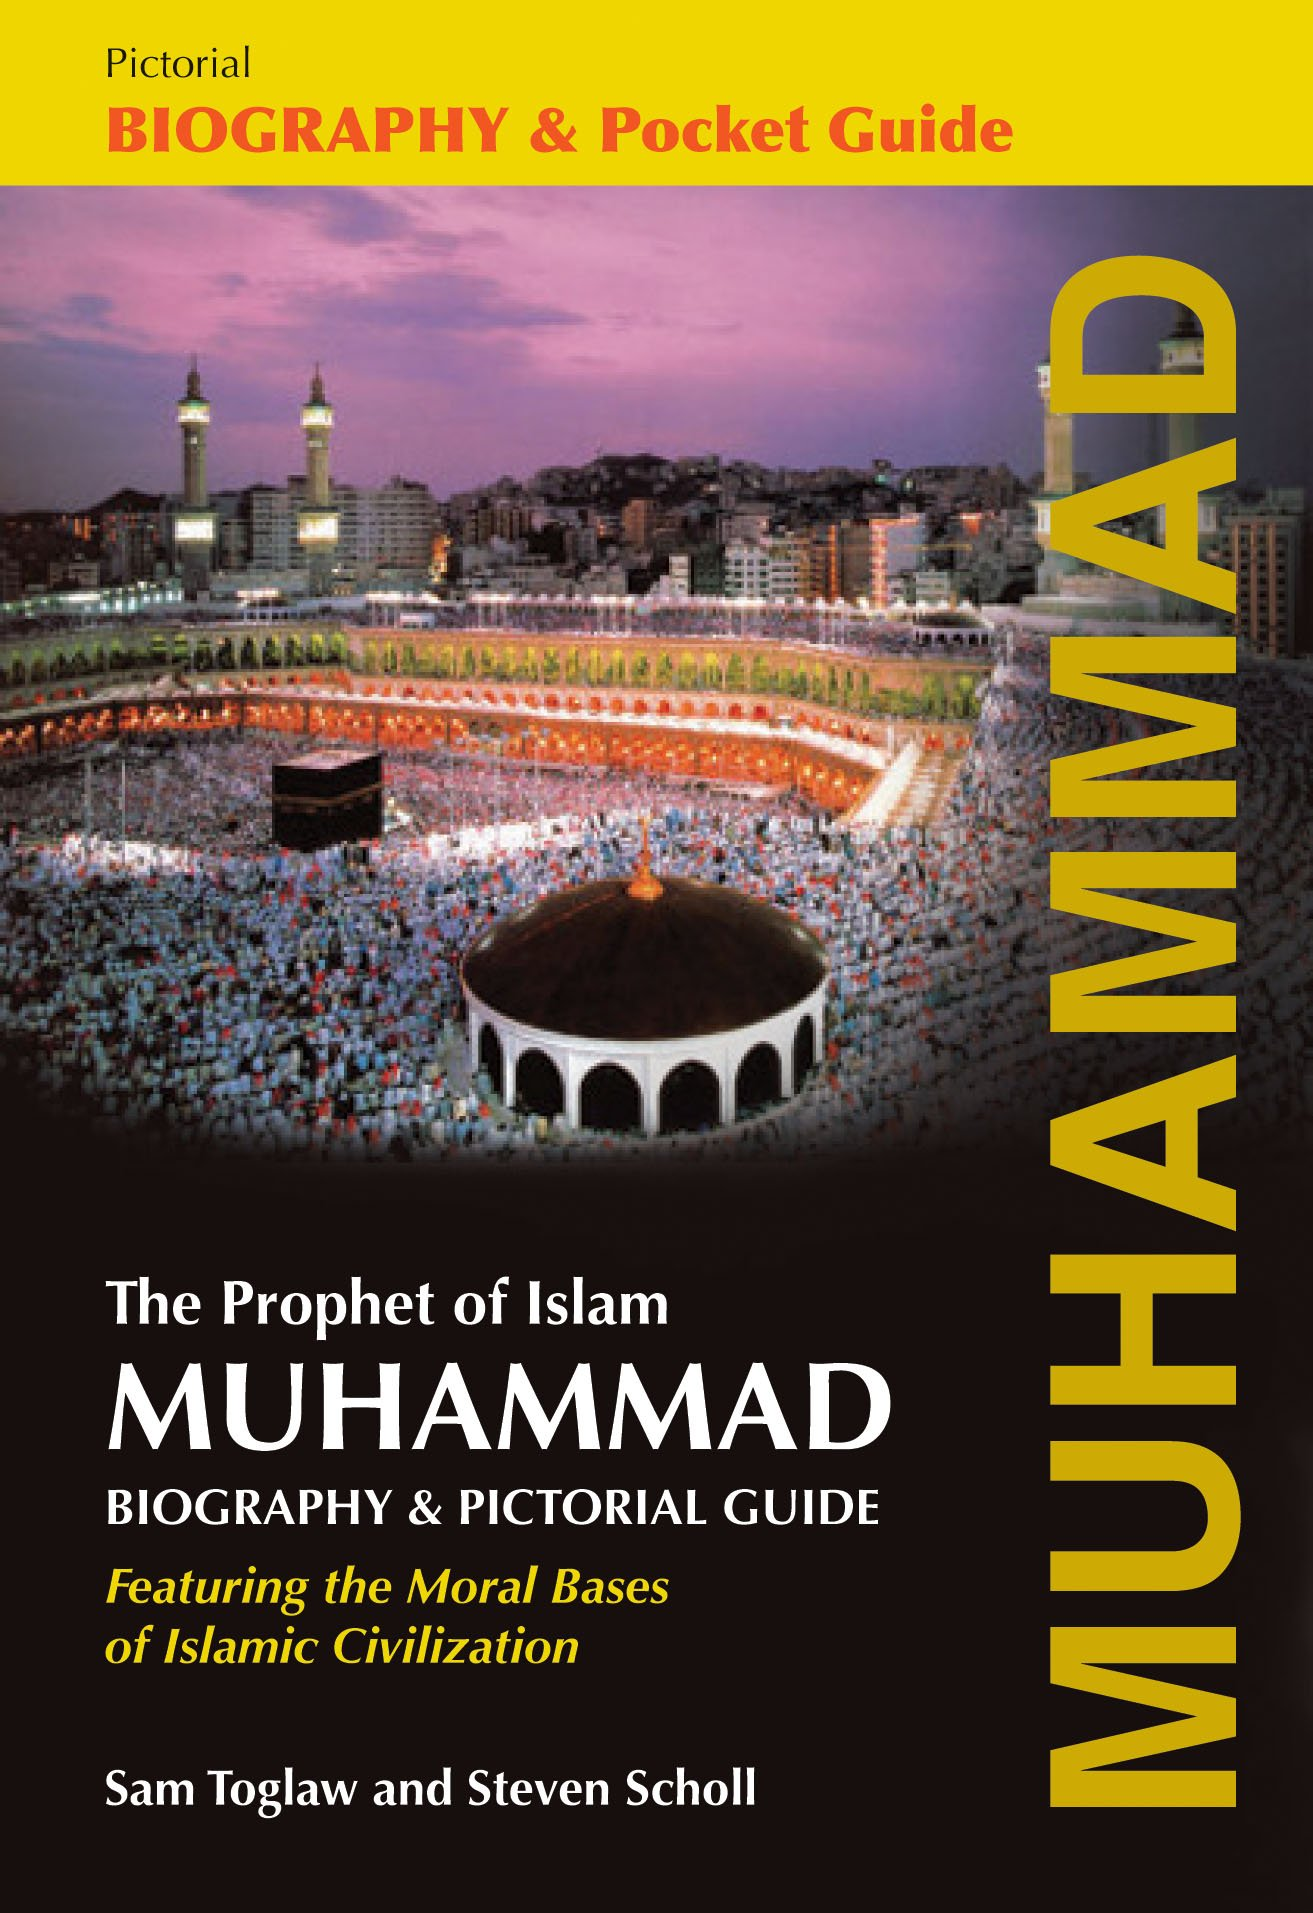 Muhammad: The Prophet of Islam – Biography and Pictorial Guide PDF